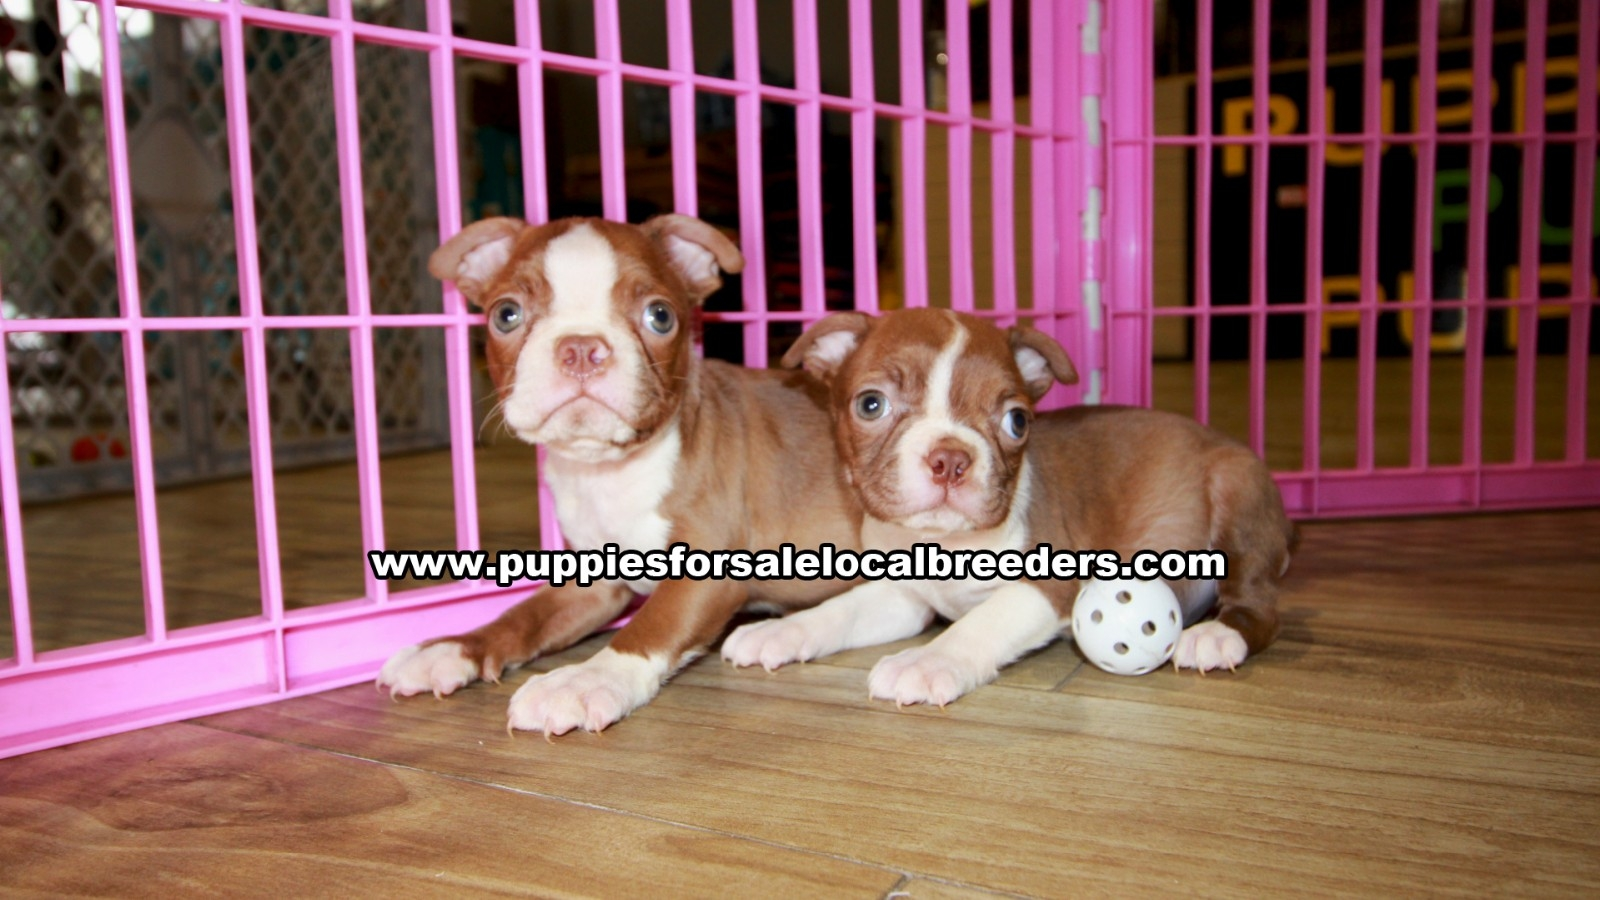 Red Boston Terrier, Puppies For Sale In Georgia, Local Breeders, Near Atlanta, Ga